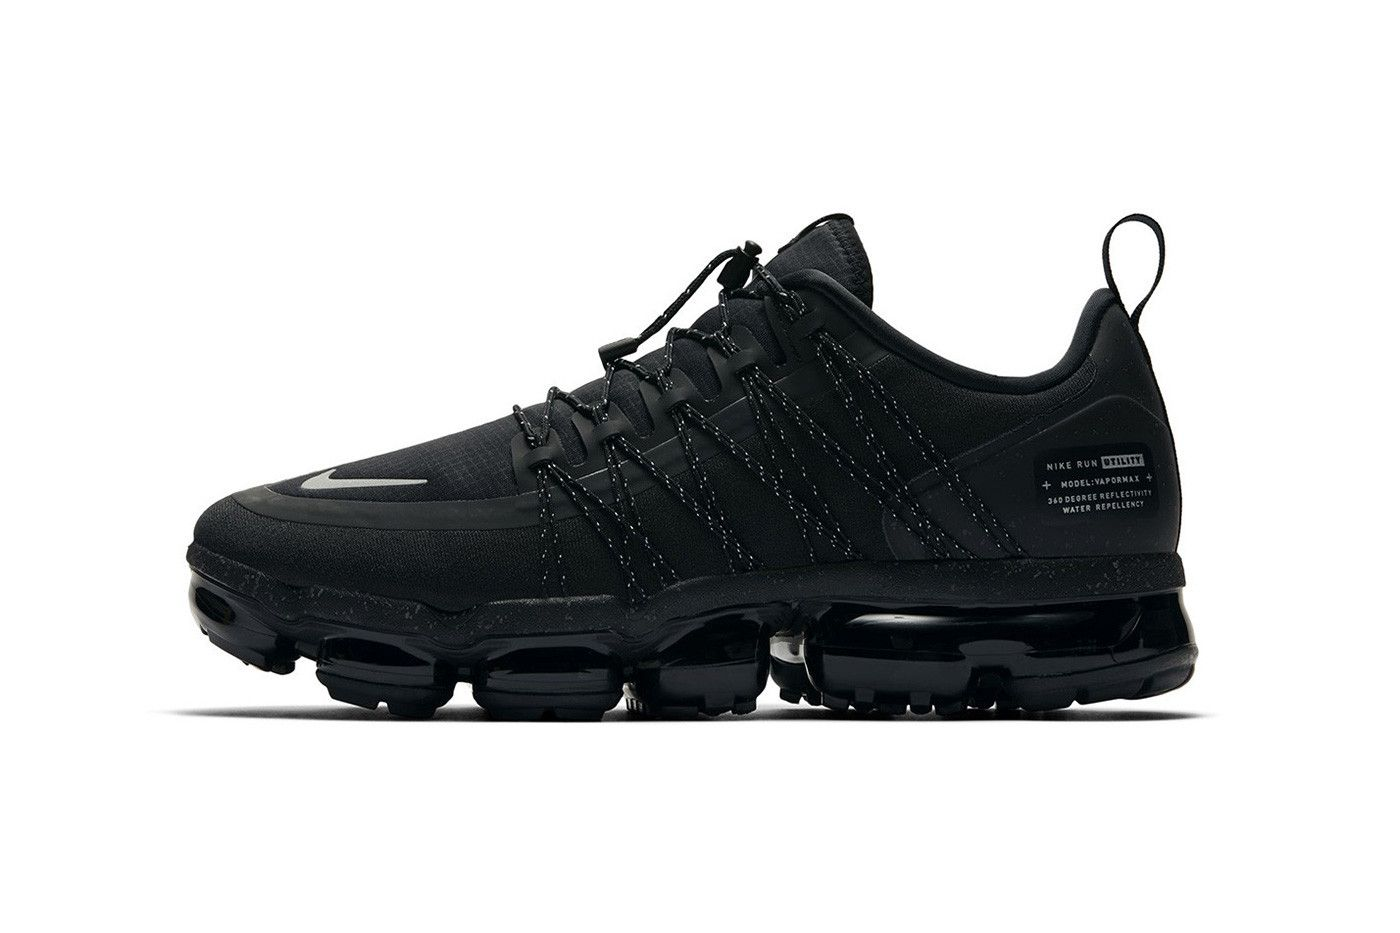 396a0054fa Air VaporMax Run Utility White Reflect Silver (W) - AQ8811-100 | shoes. in  2019 | Nike air vapormax, Nike, Sneakers nike